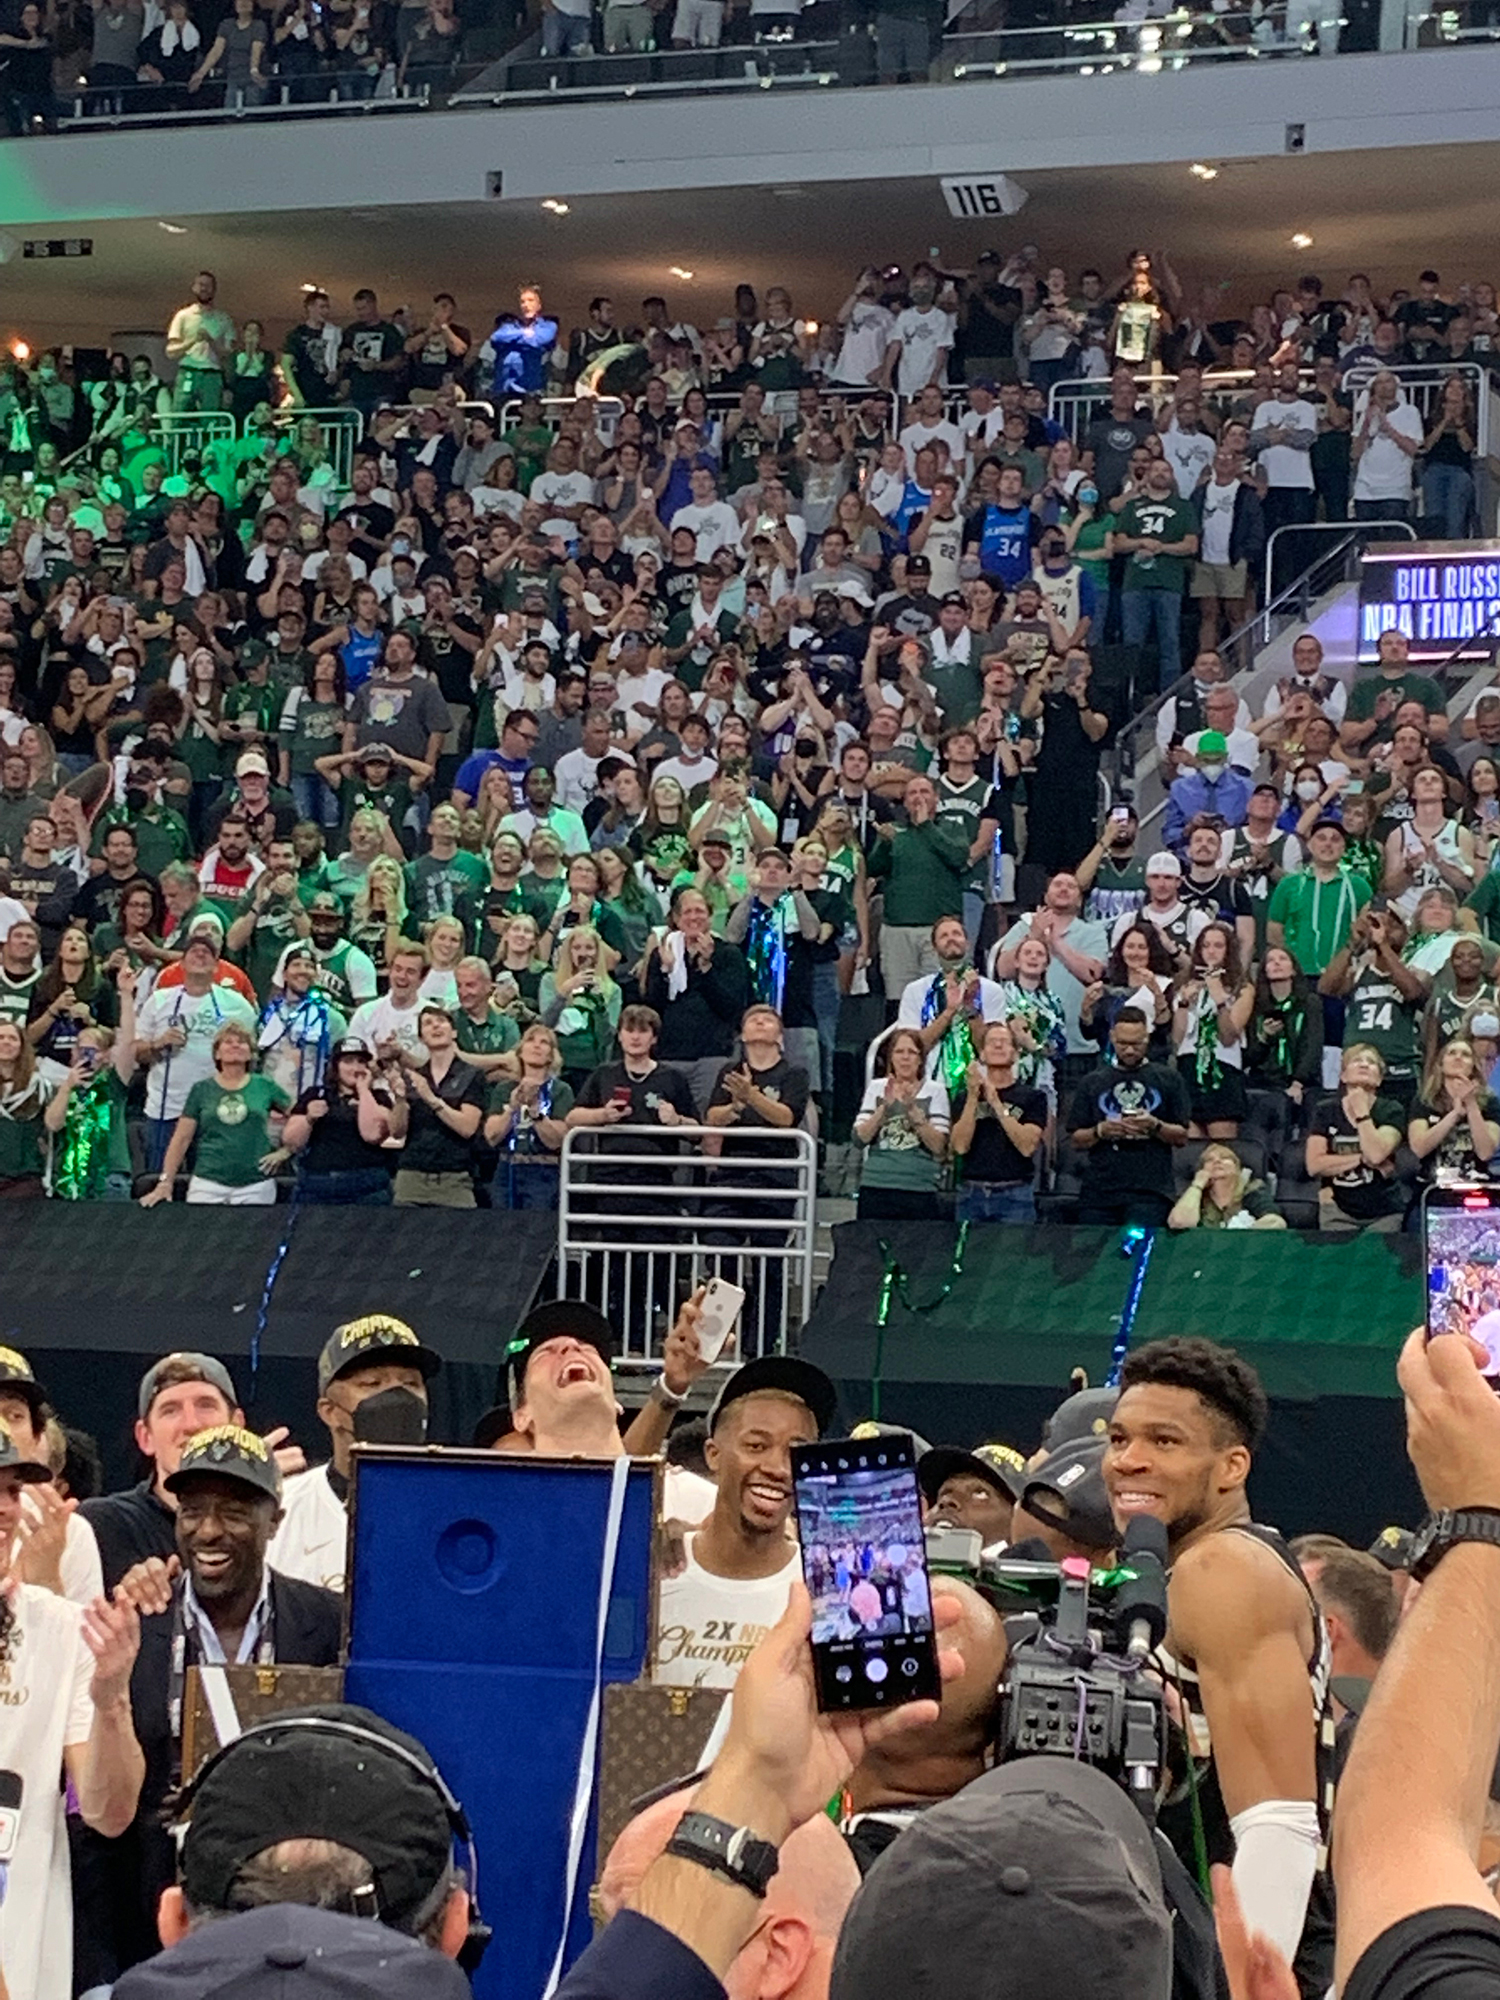 Giannis Antetokounmpo celebrates on the court in front of the crowd after winning the 2021 NBA Championship